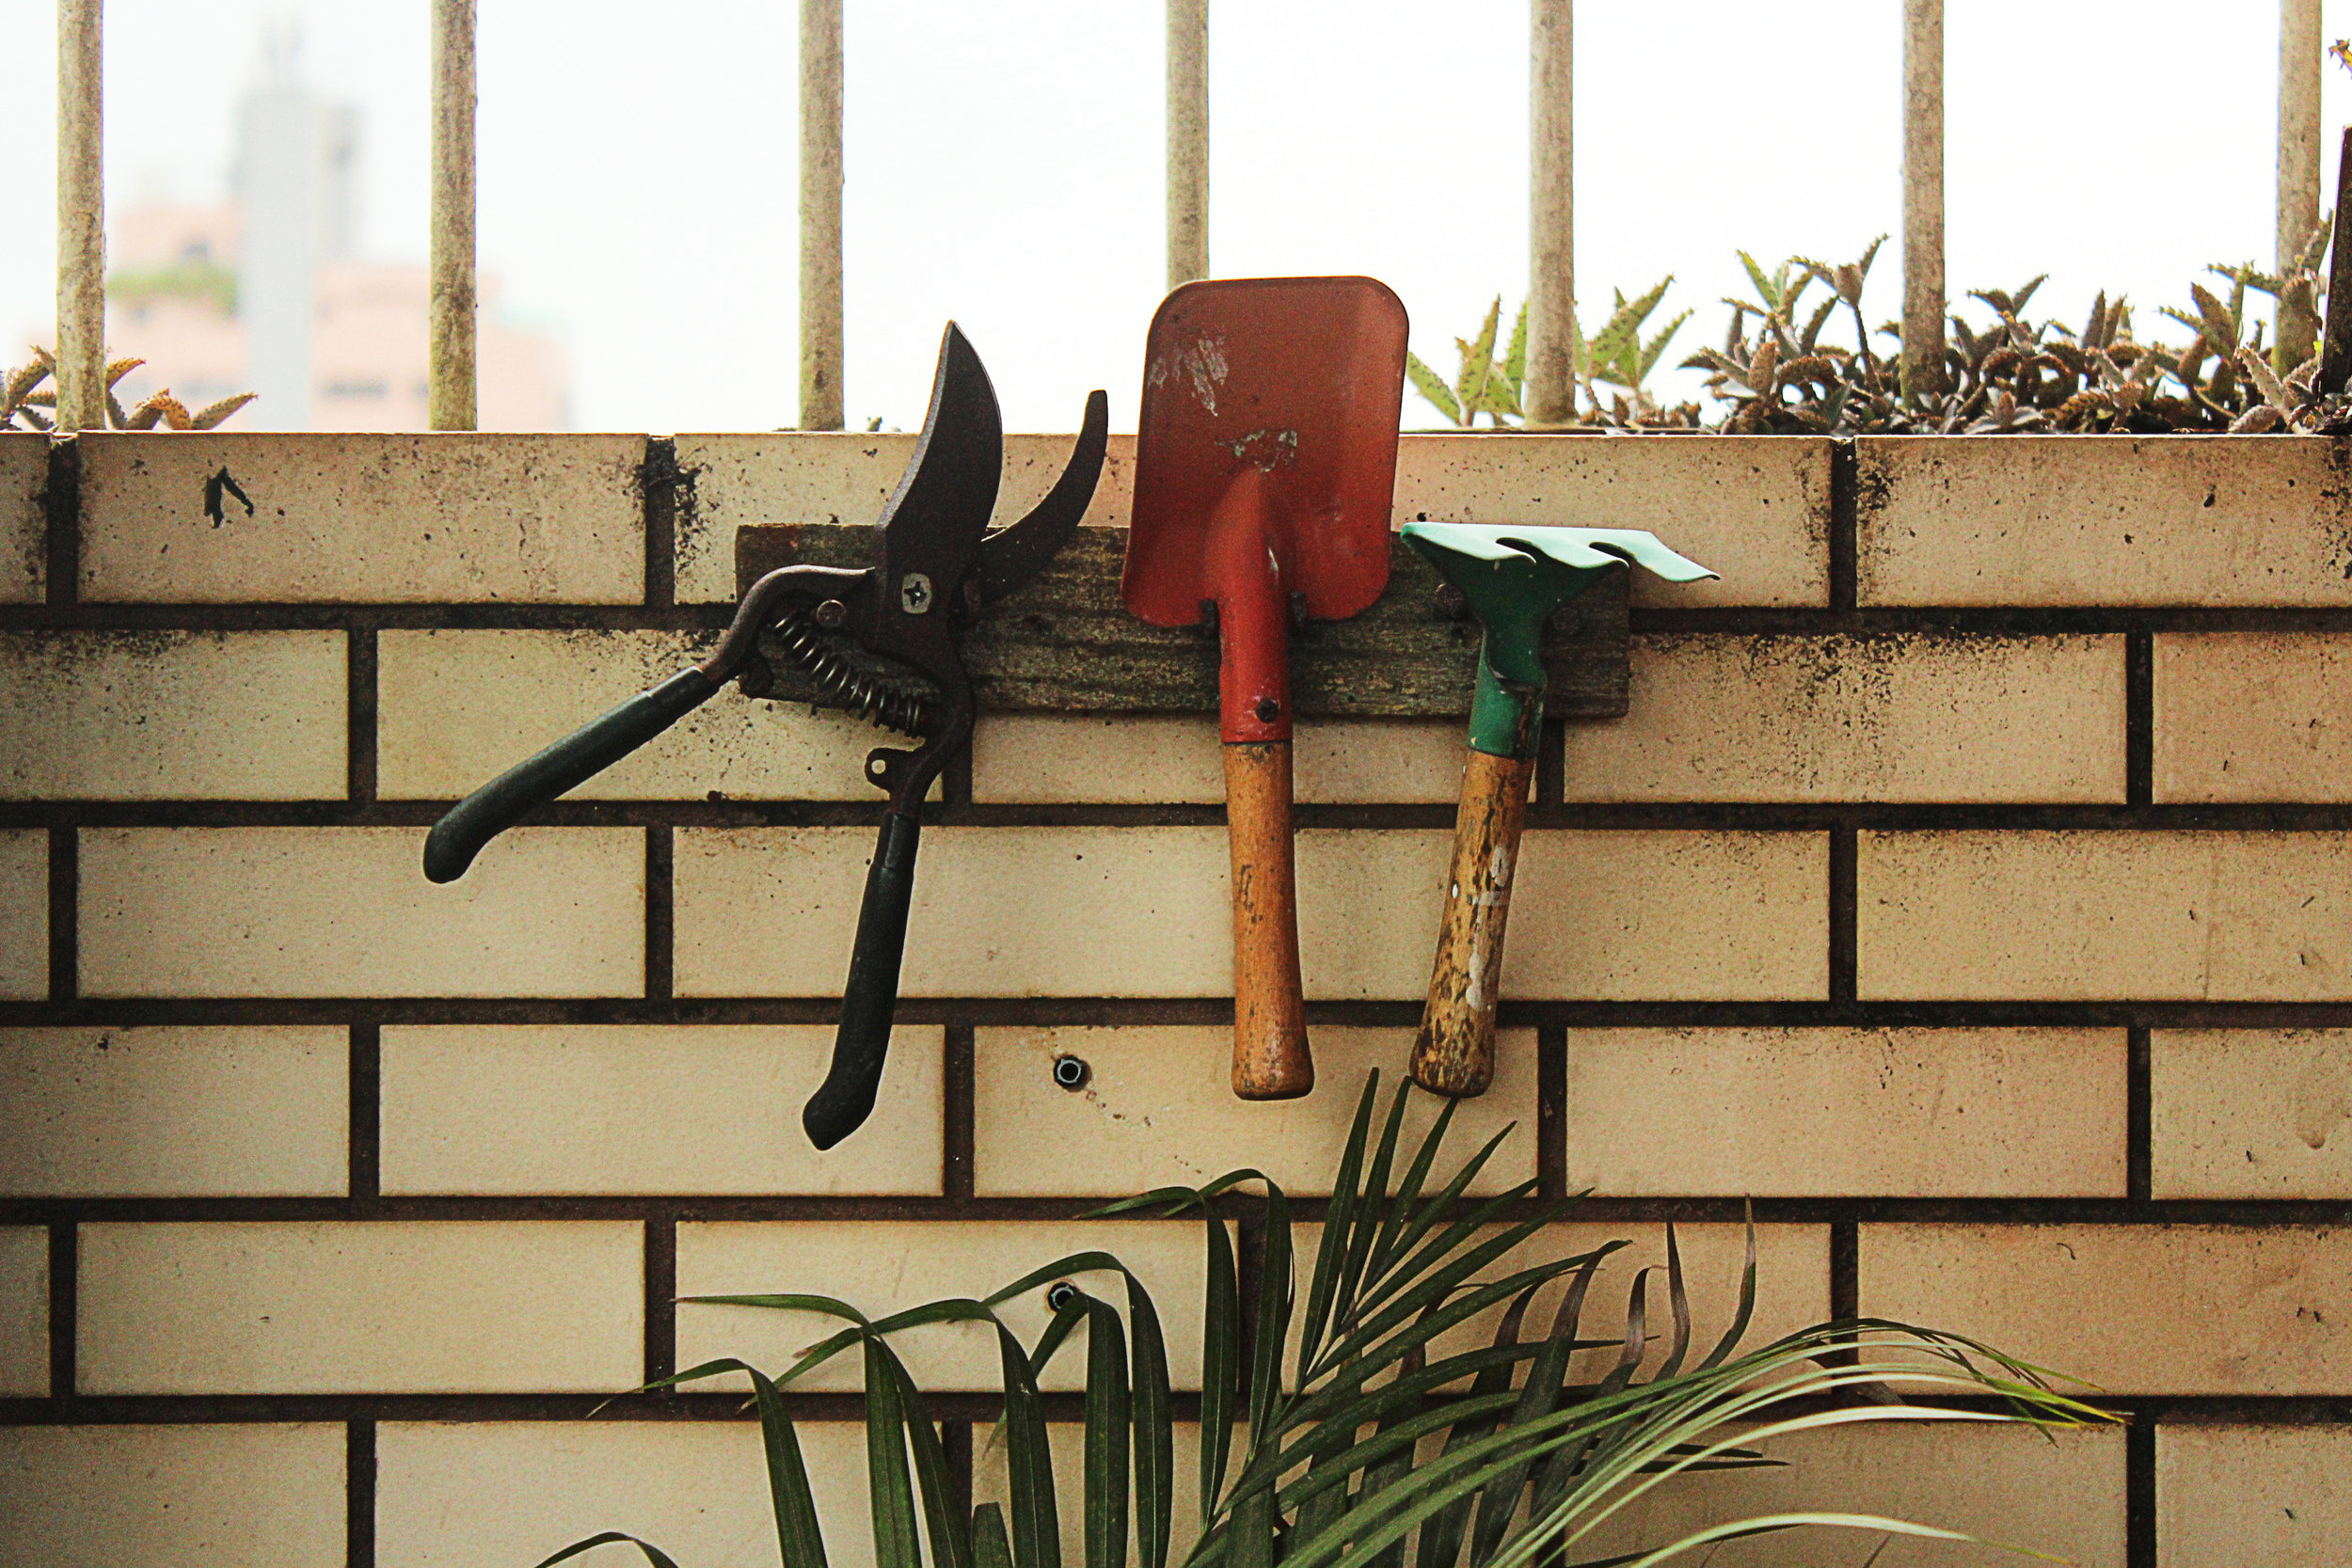 Gardening tools hanging on a wall.